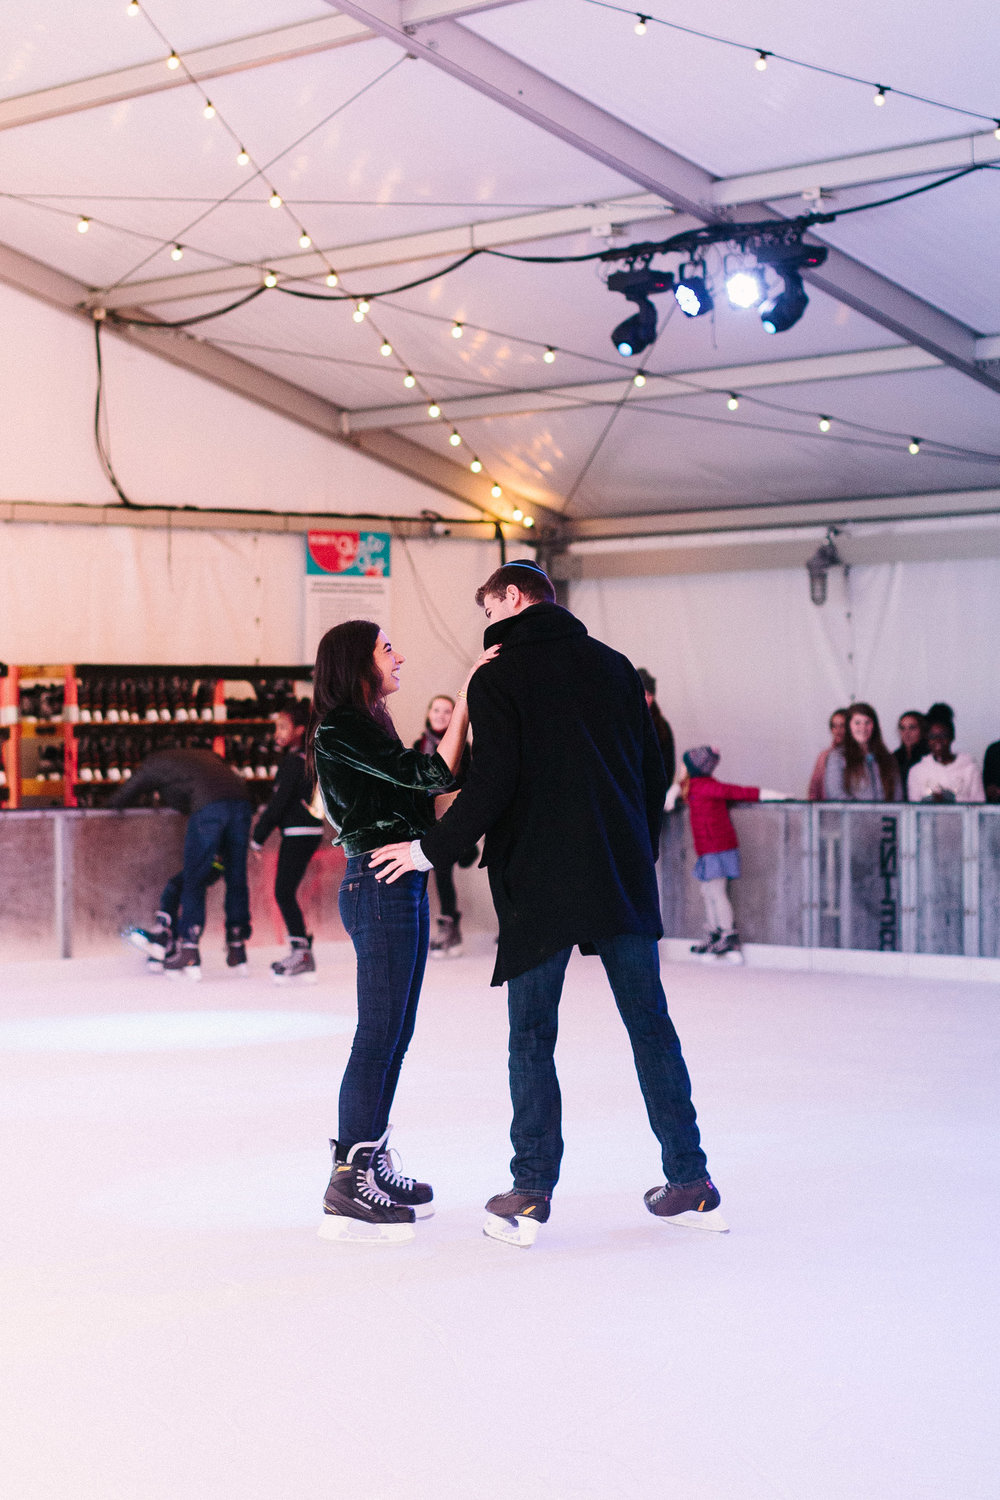 atlanta_proposal_photographer_ice_skating_rooftop_ponce_city_surprise_jewish_couple_1100.jpg